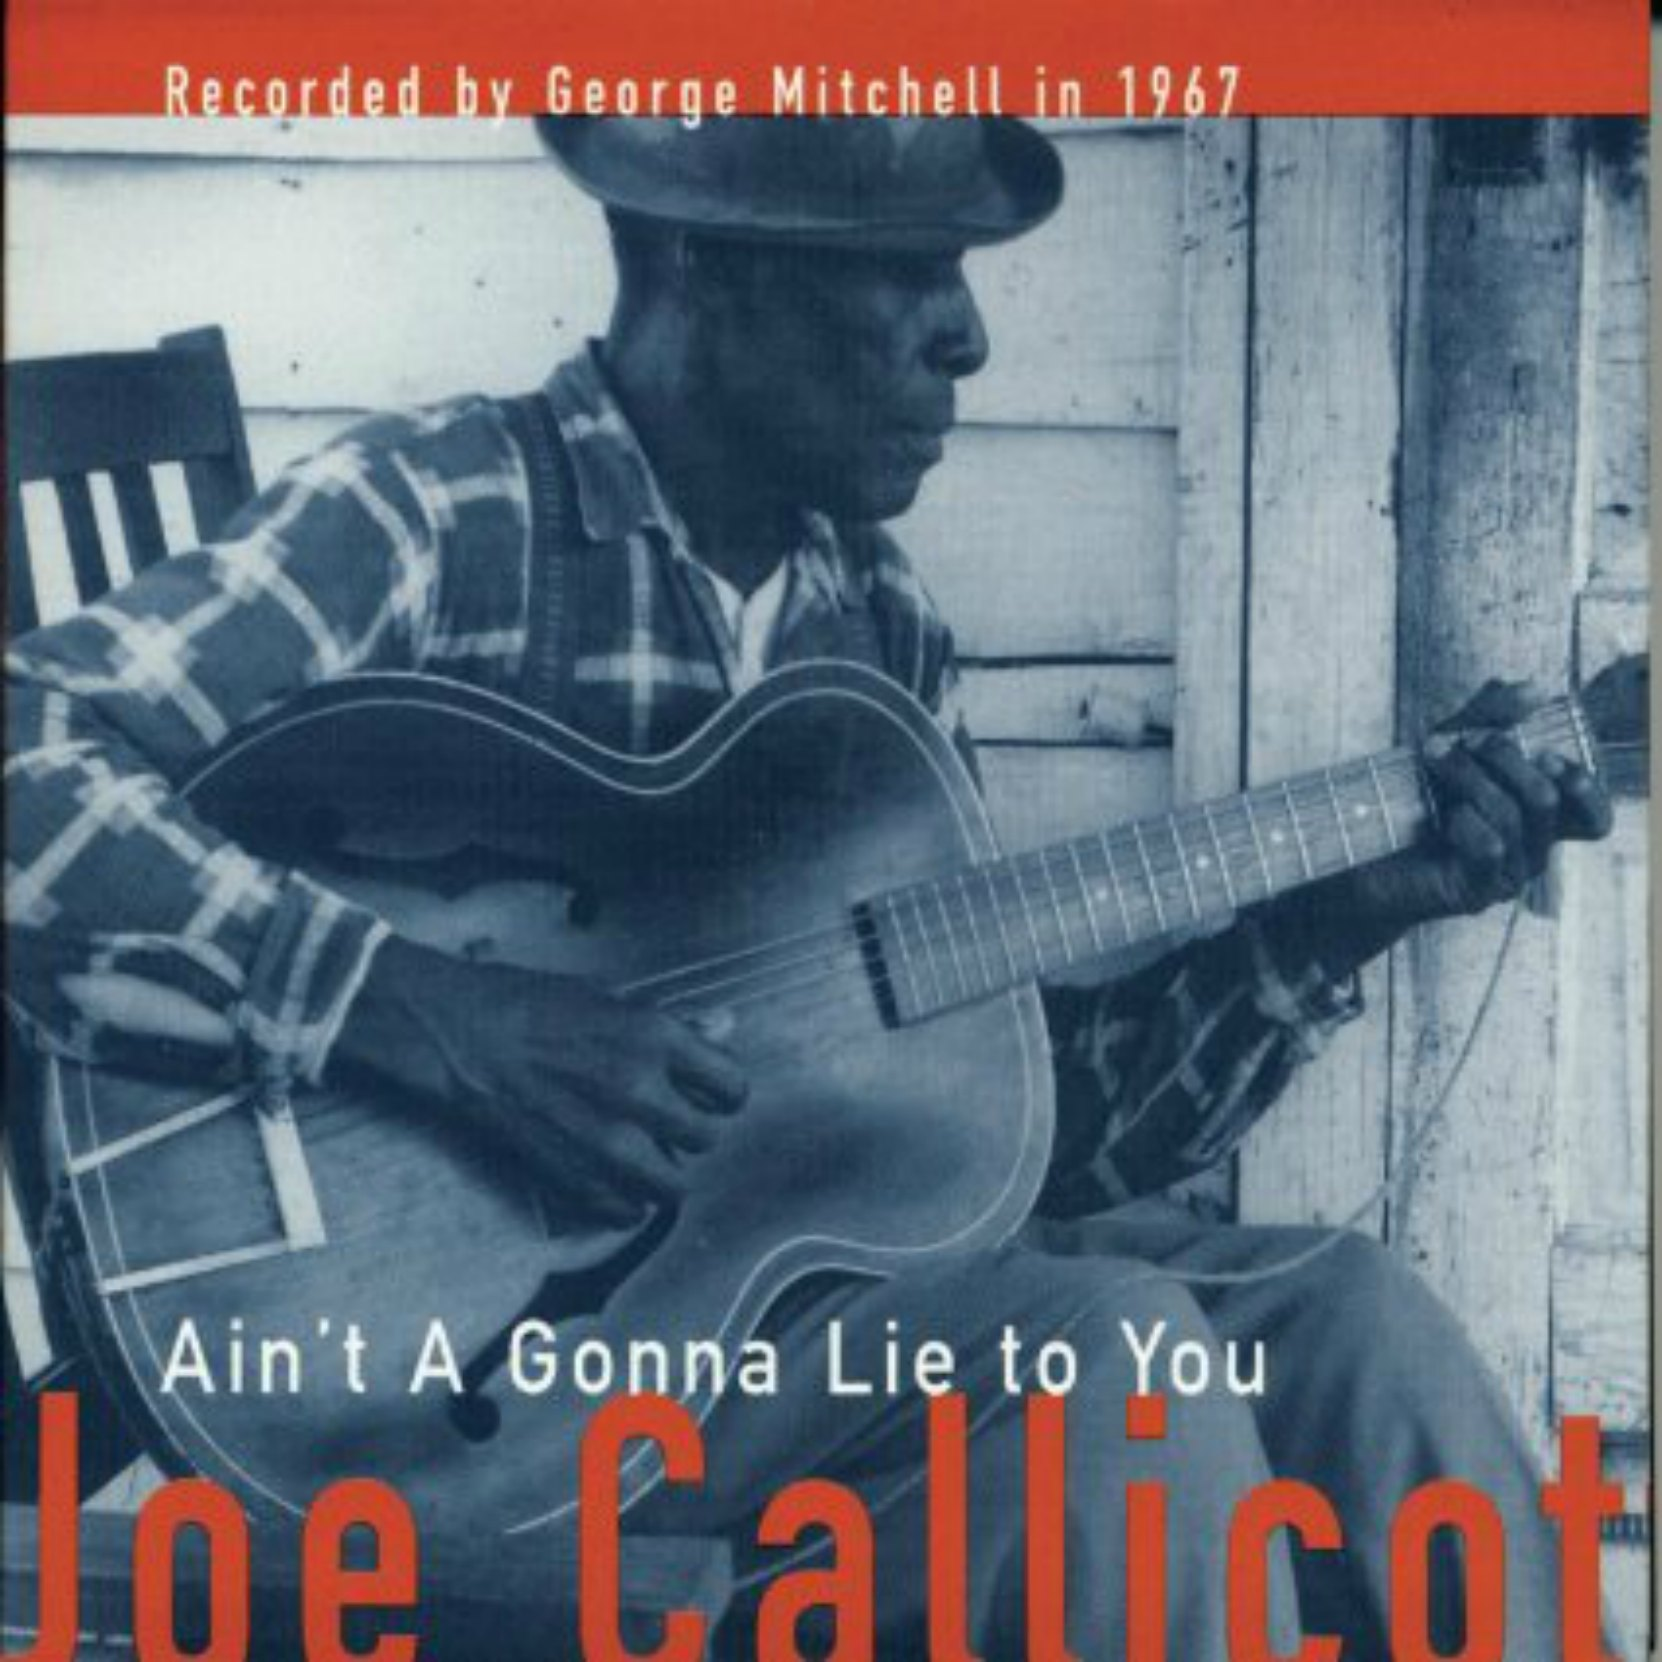 CD Cover, Ain't A Gonna Lie To You, by Joe Callicot, recorded by George Mitchell in 1967, released on Fat Possum Records